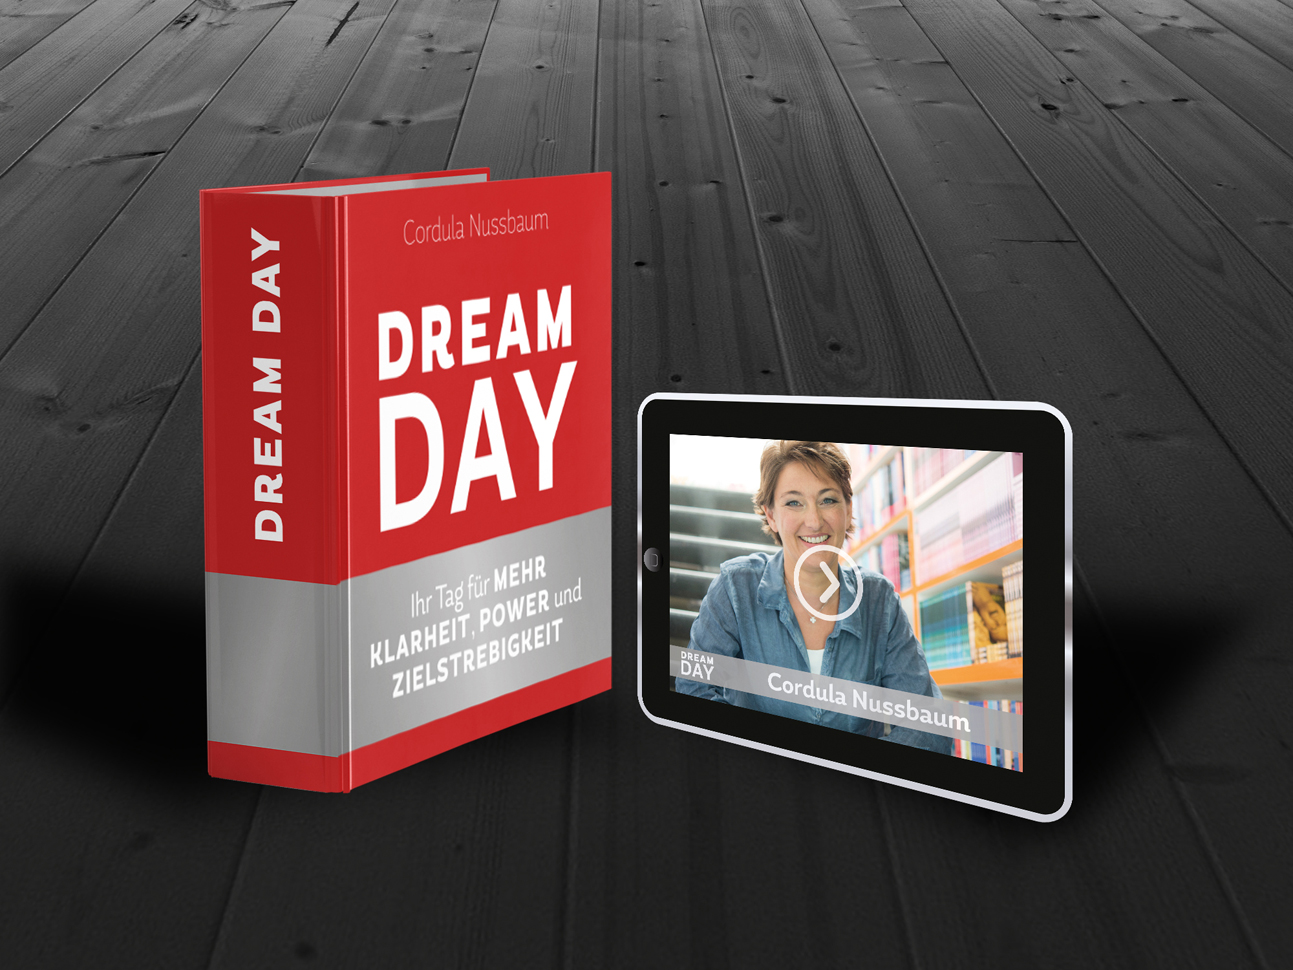 martin_zech_design_corporate_design_cordula-nussbaum_dreamday_e-coaching